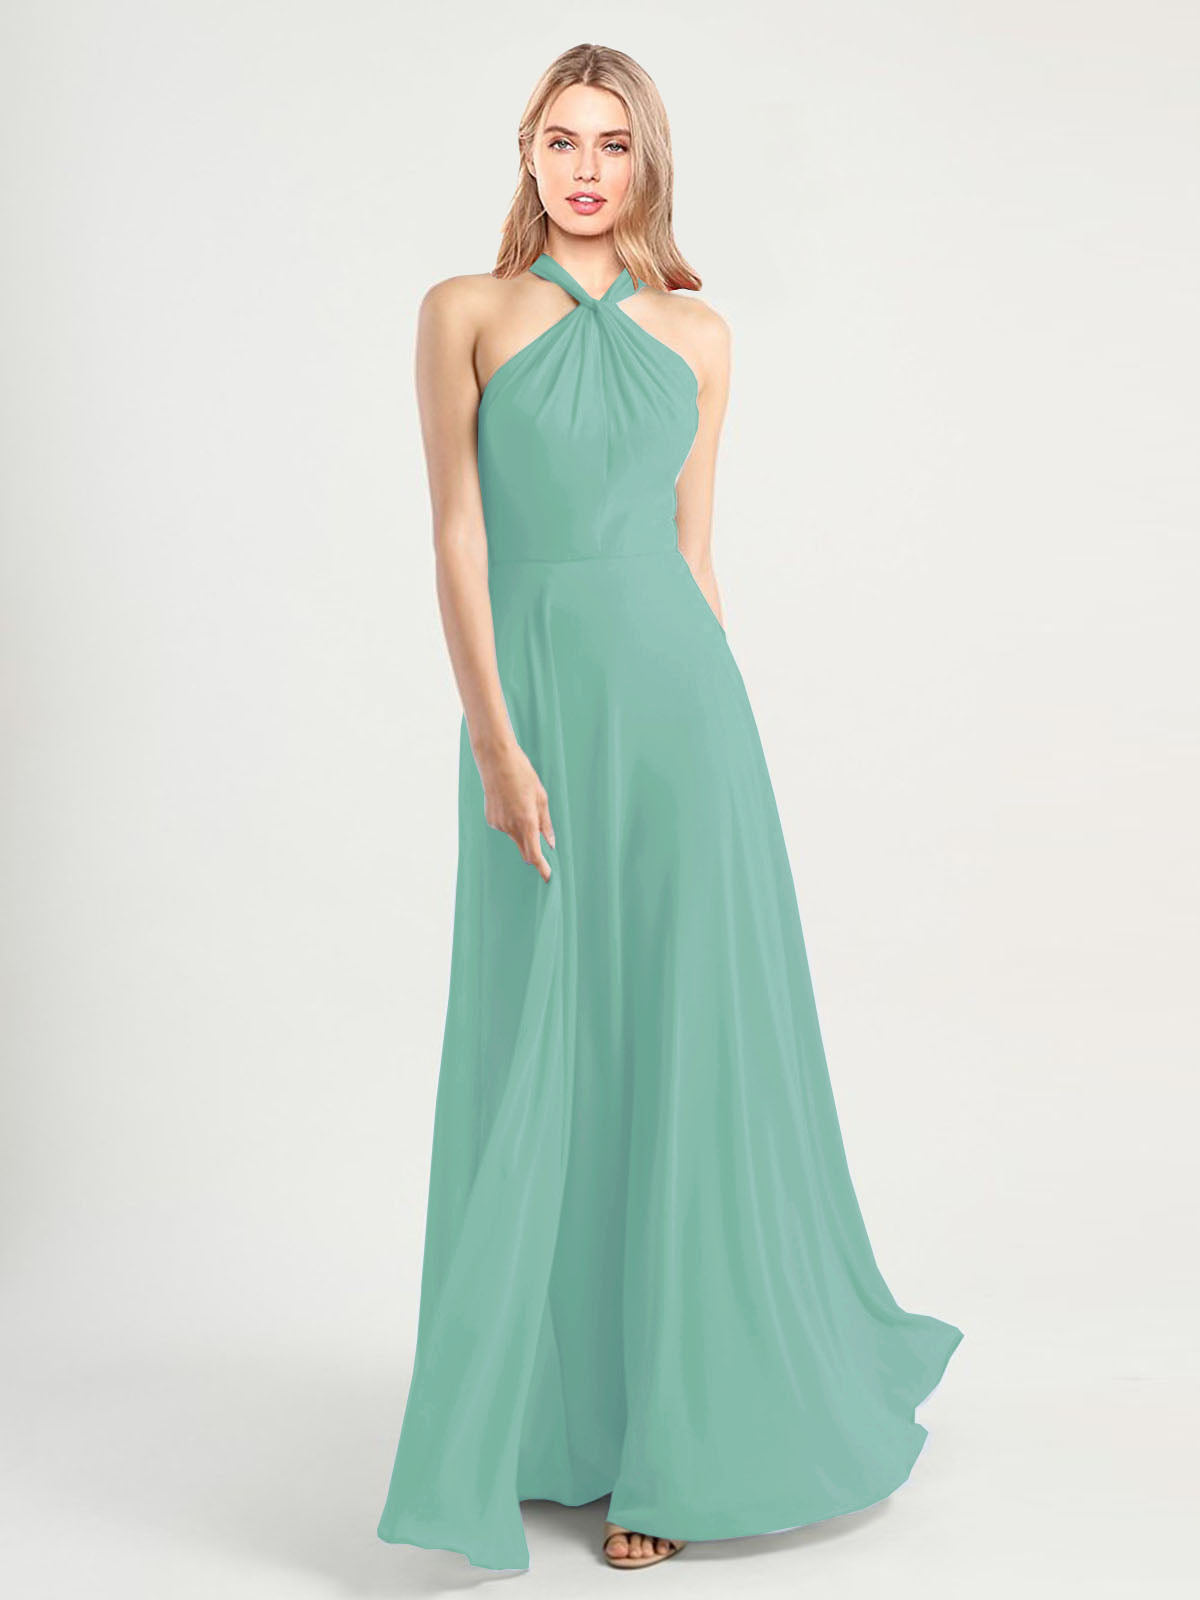 Long A-Line High Neck, Halter Sleeveless Jade Chiffon Bridesmaid Dress Yoli